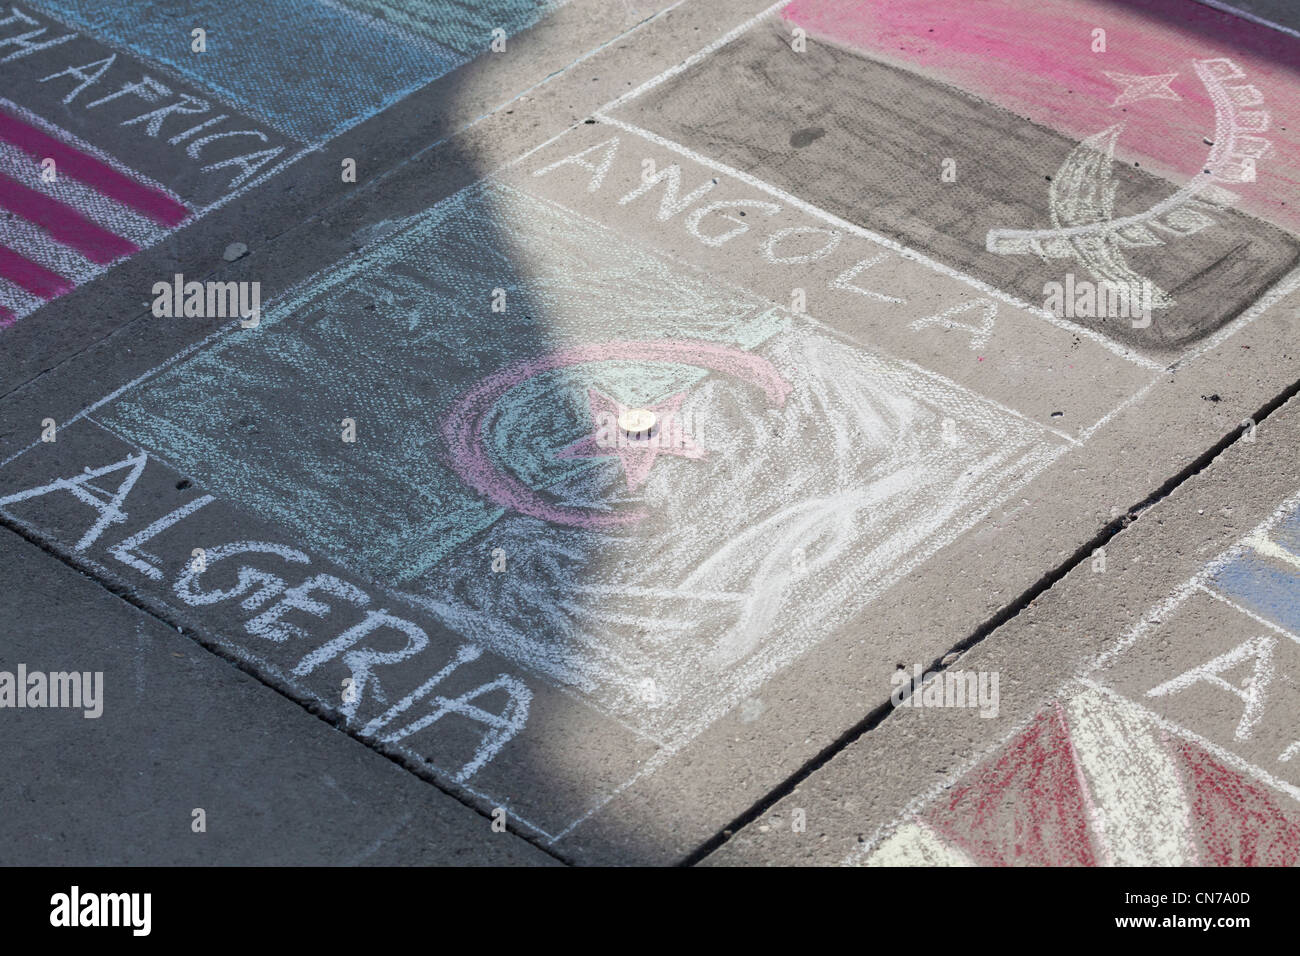 Chalk pavement drawing of flag of Algeria and Angola at the South Bank in London - Stock Image